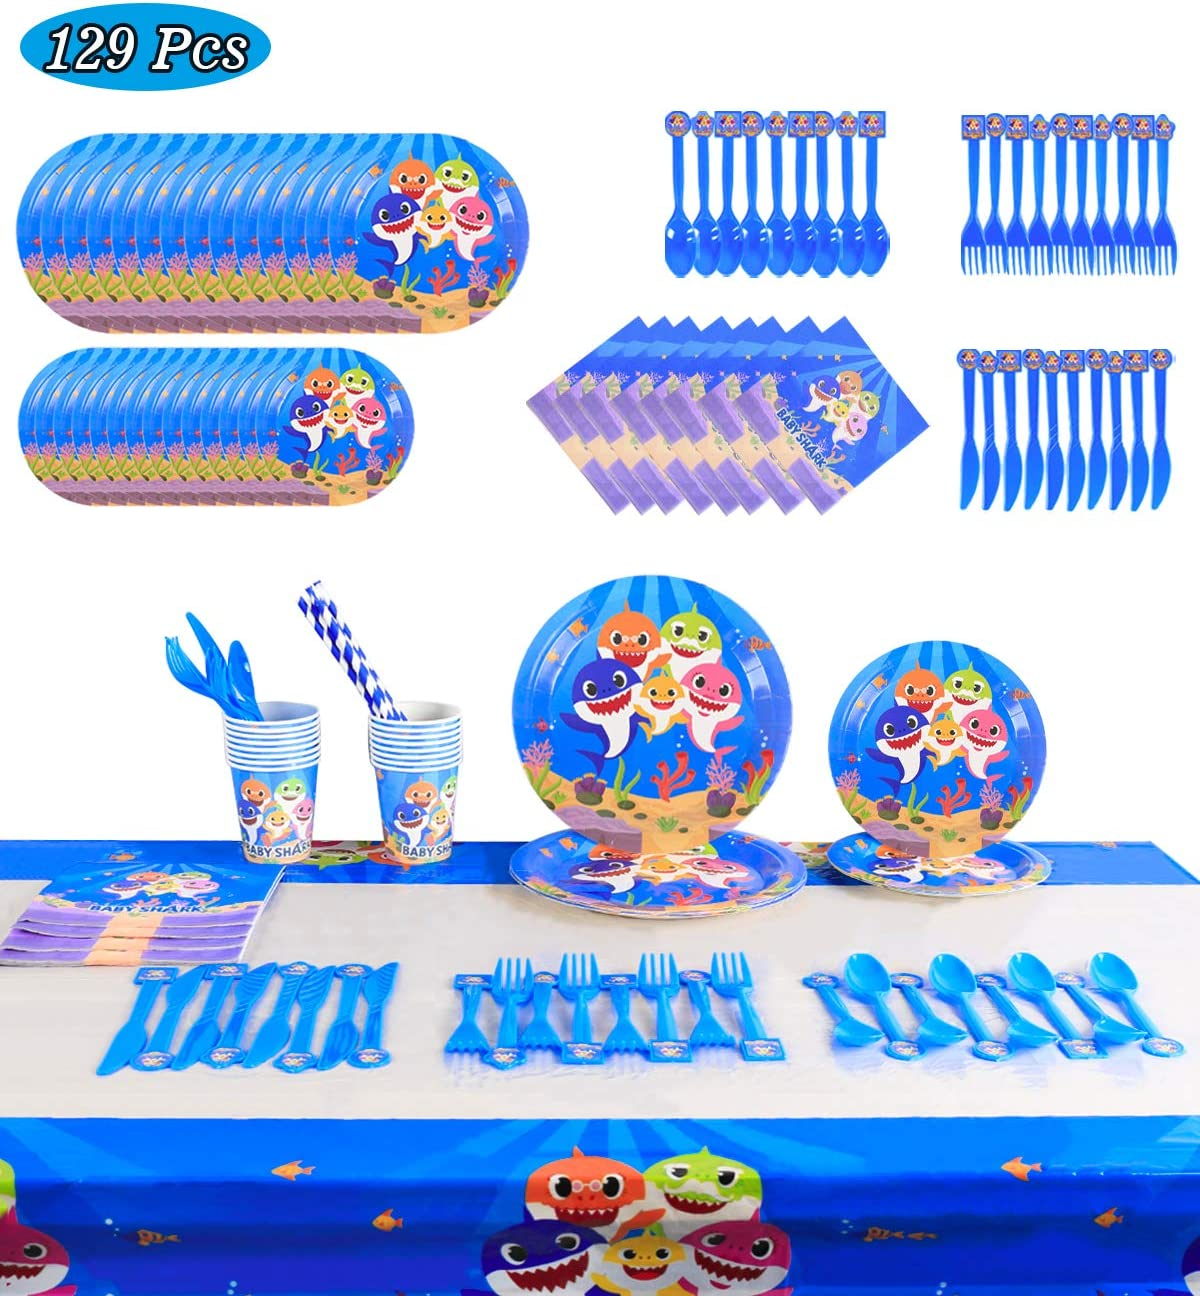 Shark Party Supplies for Baby - 144 Pcs Including Flatware, Spoons, Plates, Cups, Straws,Napkins Birthday Party Decorations Favor Pack Setfor Kids Girls